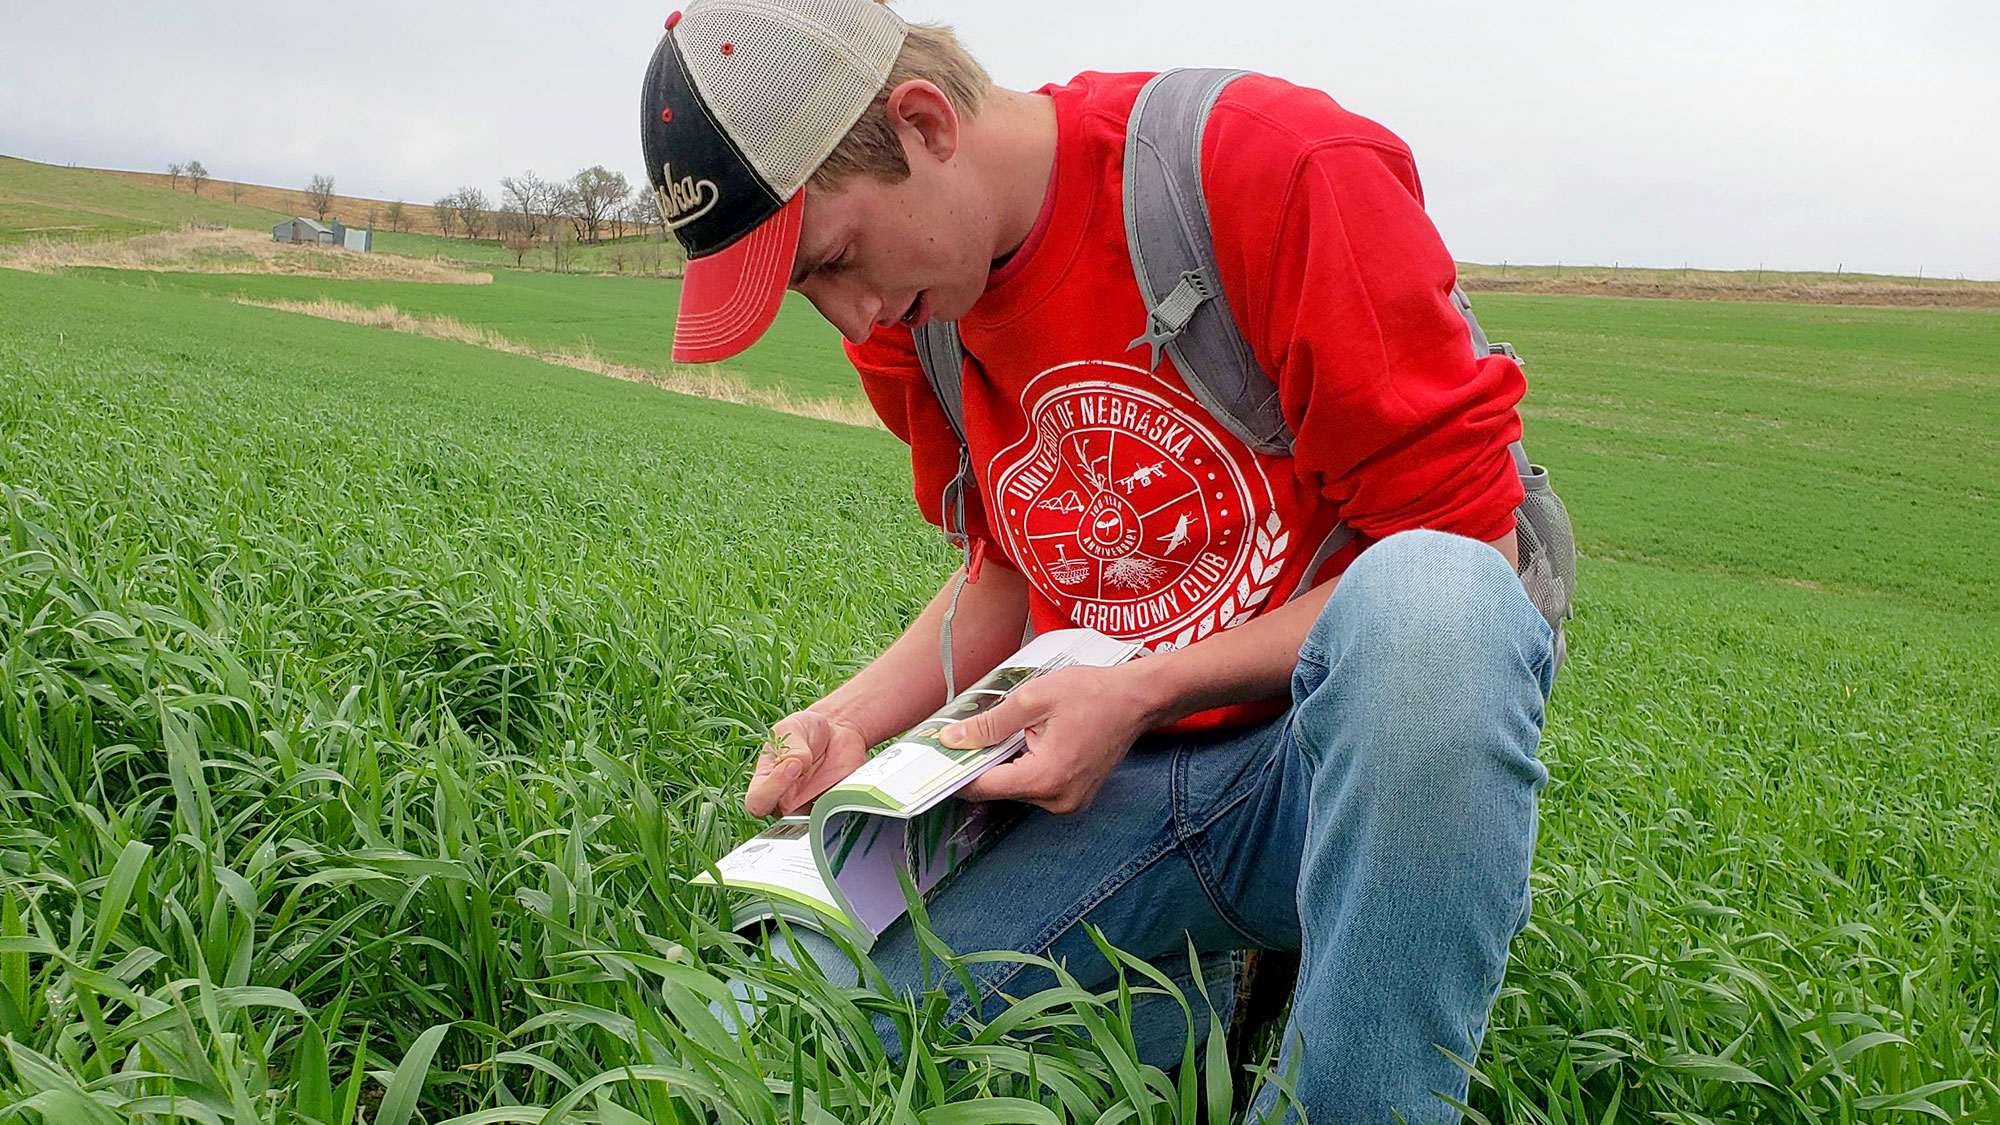 Chad Lammers, a senior plant biology major at Nebraska, scouts for weeds in a rye field on the family farm near Hartington, Nebraska. | Photo courtesy of Claire Schilmoeller